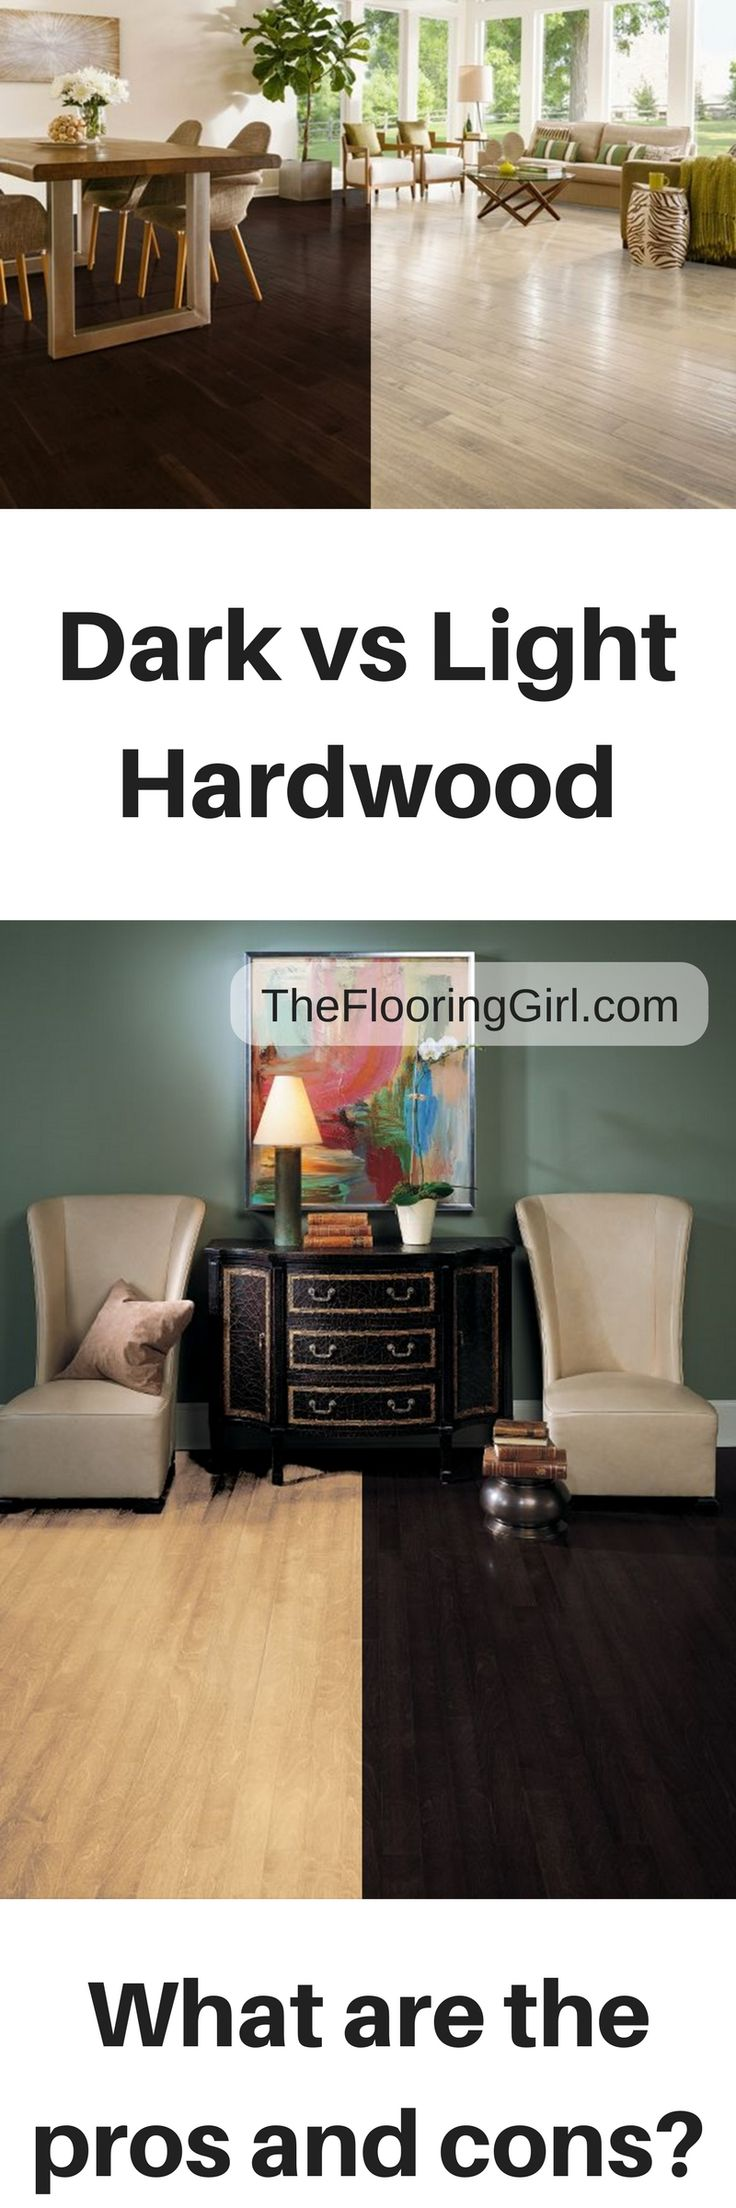 106 Best Ideas About Dark Hardwood Flooring On Pinterest